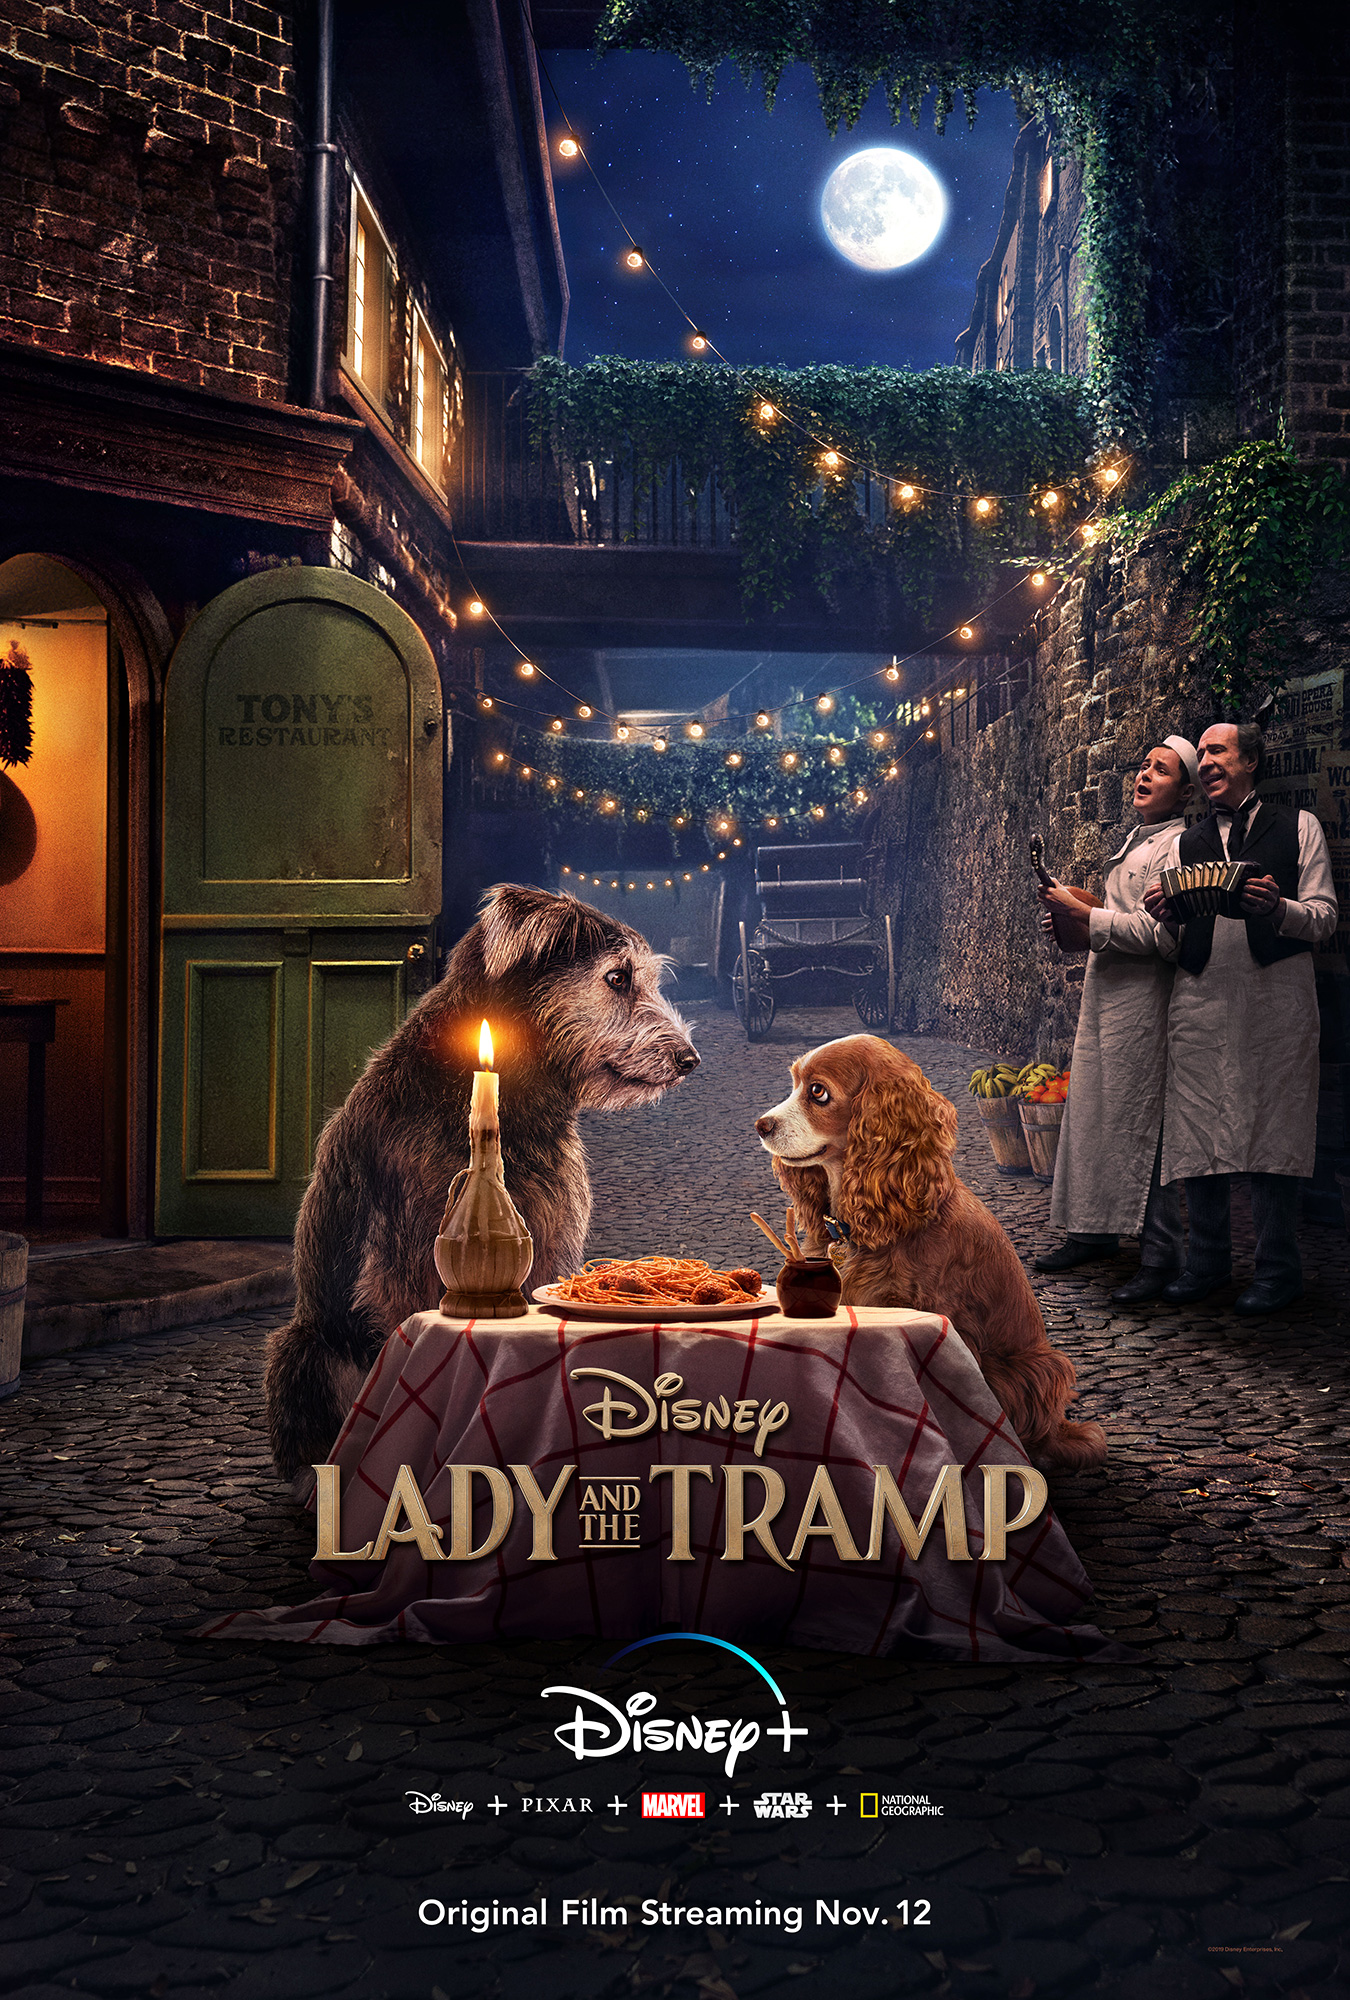 Lady and the Tramp | One Sheet Design, Finishing & Illustration